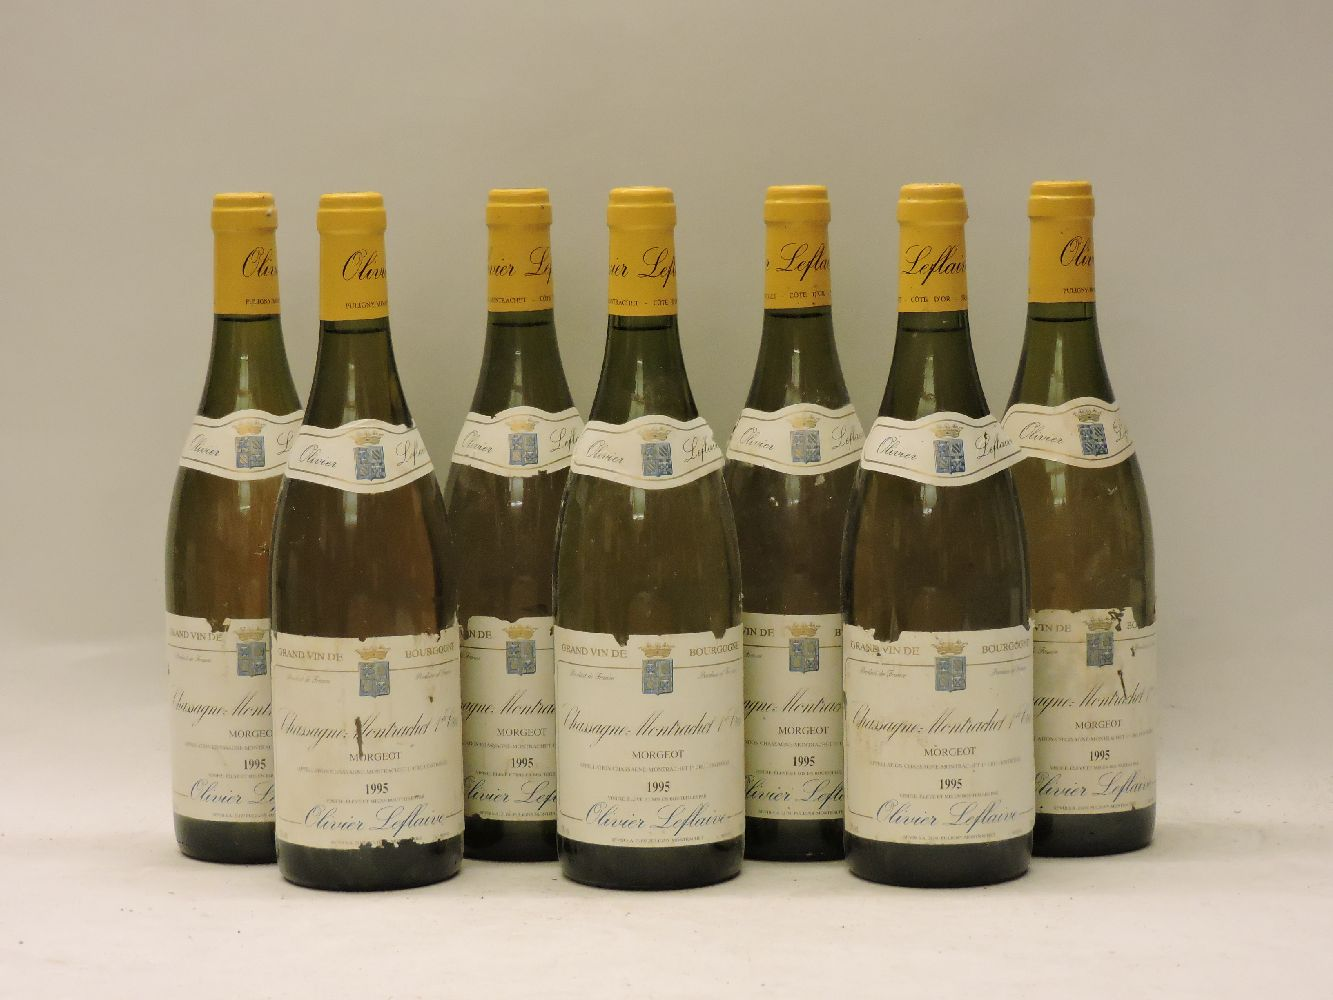 Lot 14 - Chassagne-Montrachet 1ere Cru, Morgeot, Leflaive, 1995, seven bottles (dirty labels)